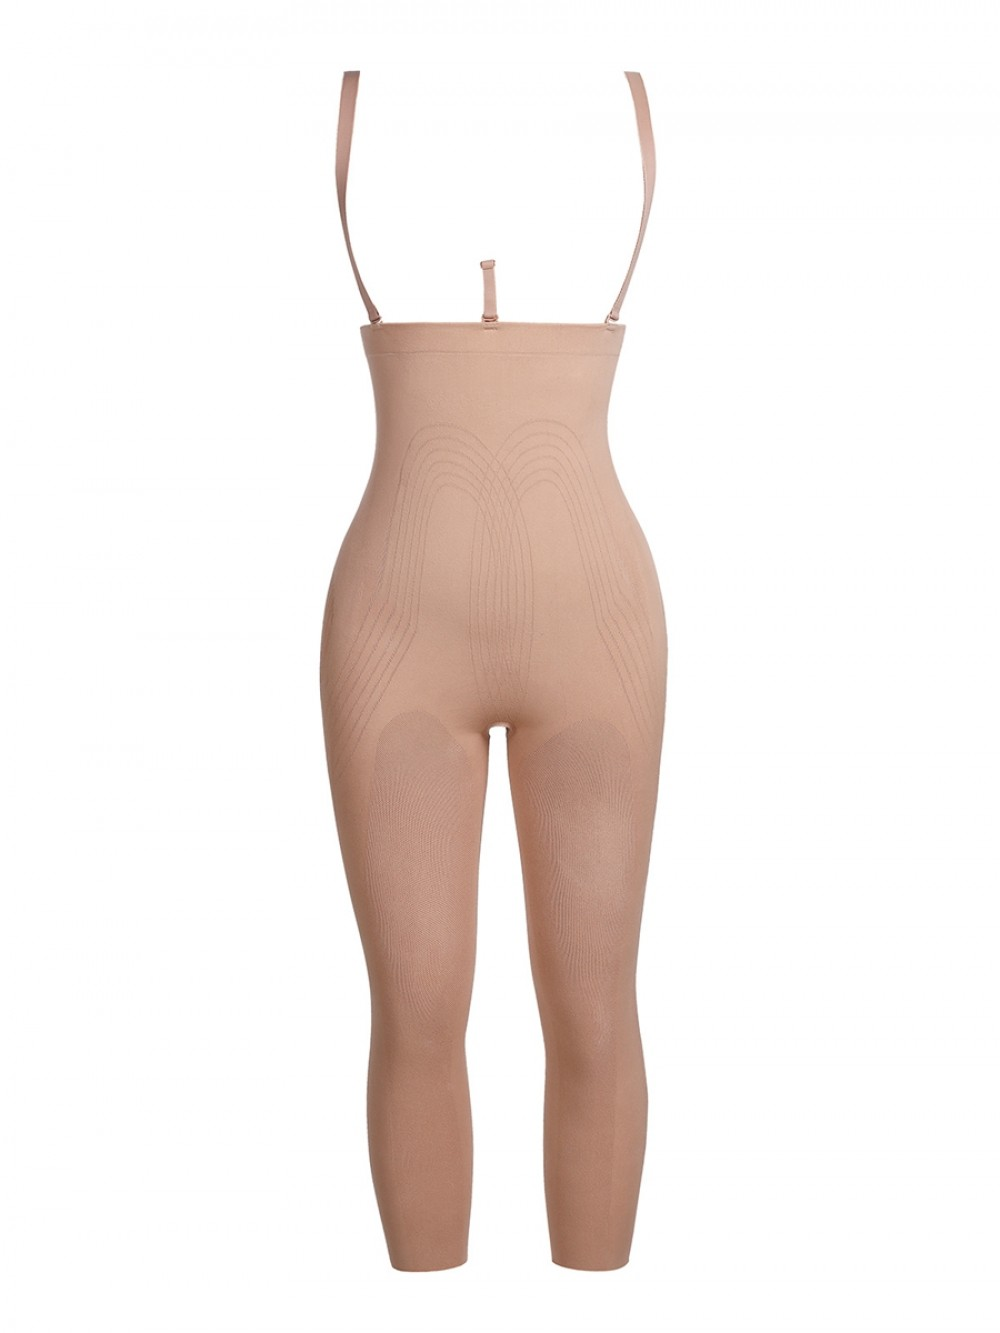 Nude Seamless Adjustable Straps Full Body Shaper Shaping Comfort